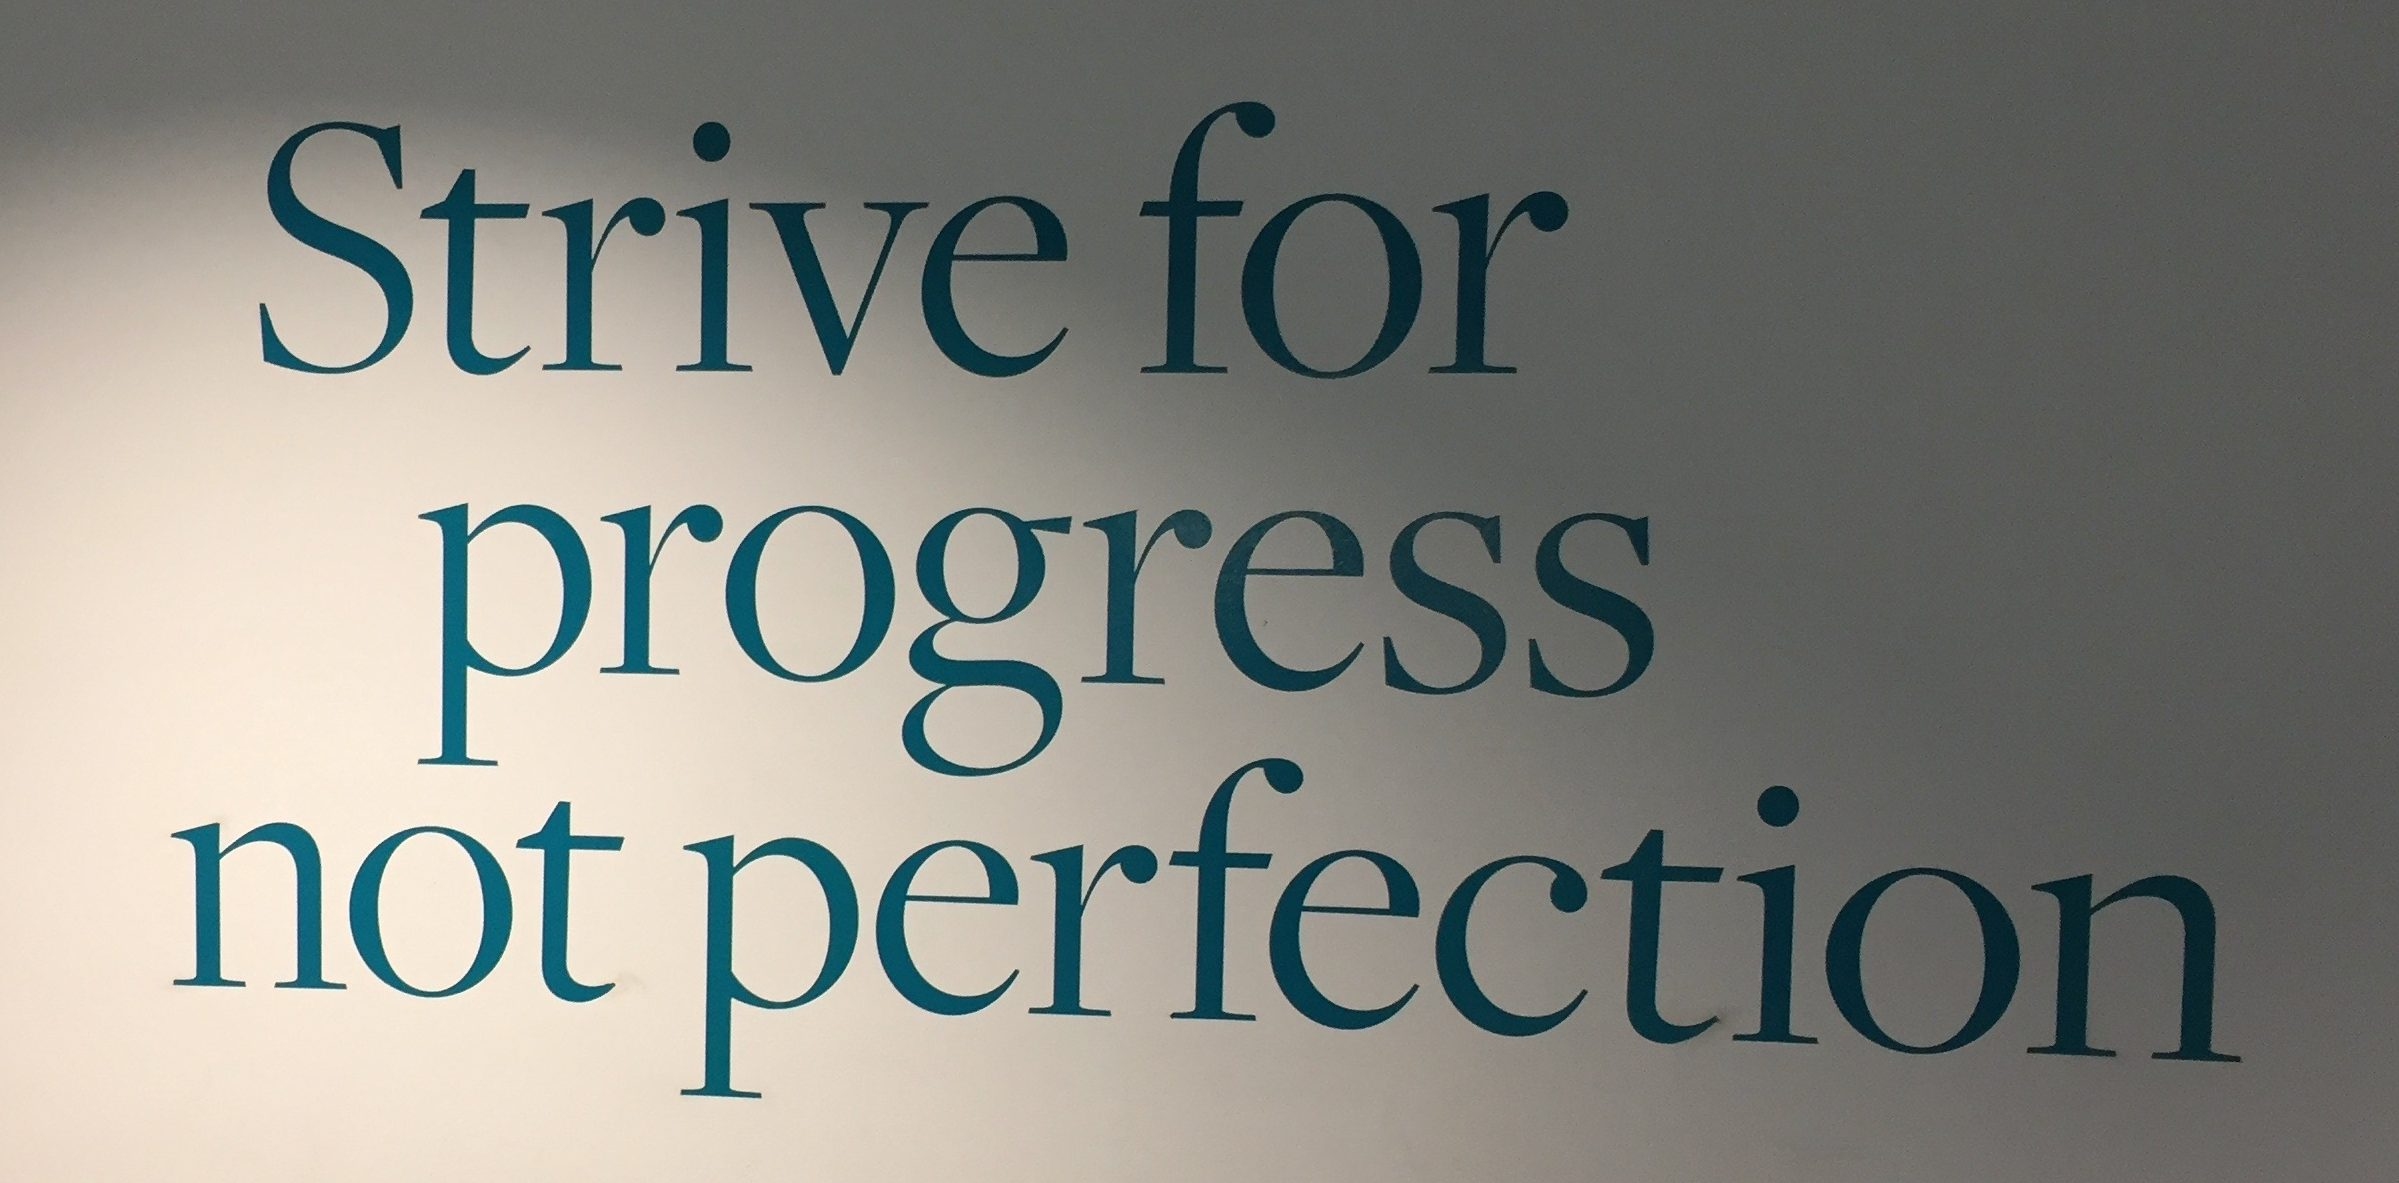 Wall sticker that says 'Strive for progress, not perfection'.